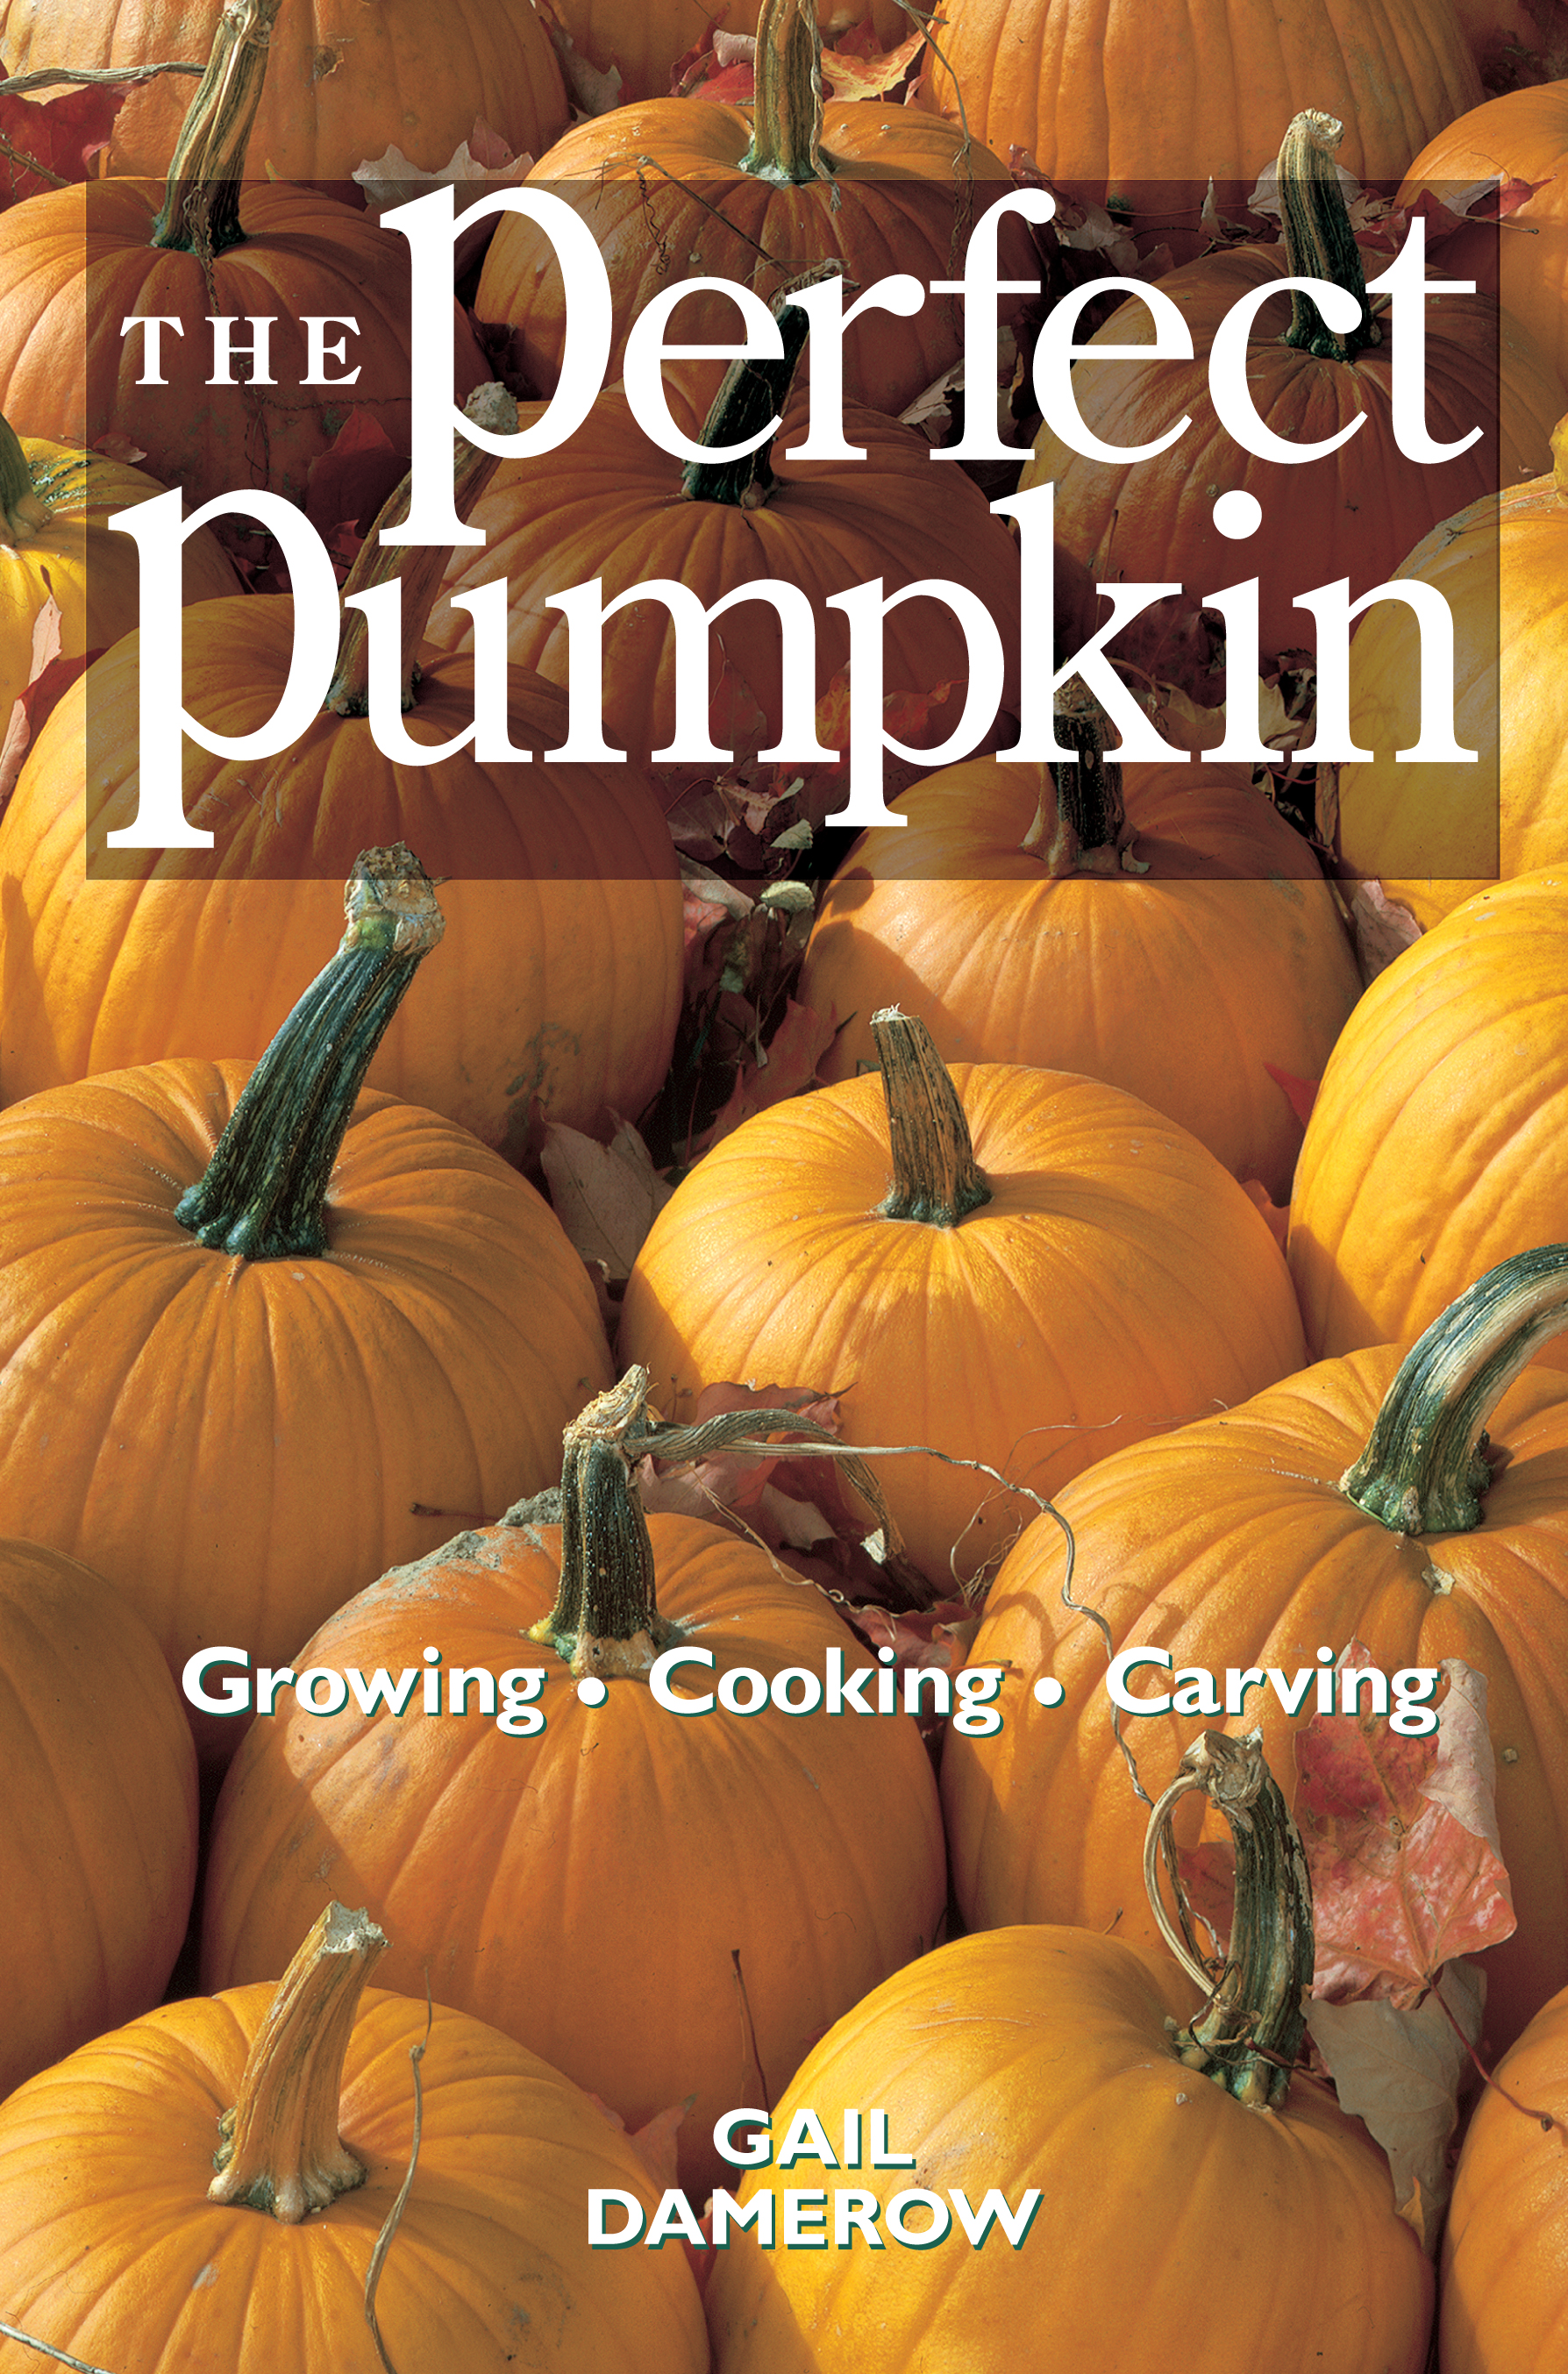 The Perfect Pumpkin Growing/Cooking/Carving - Gail Damerow